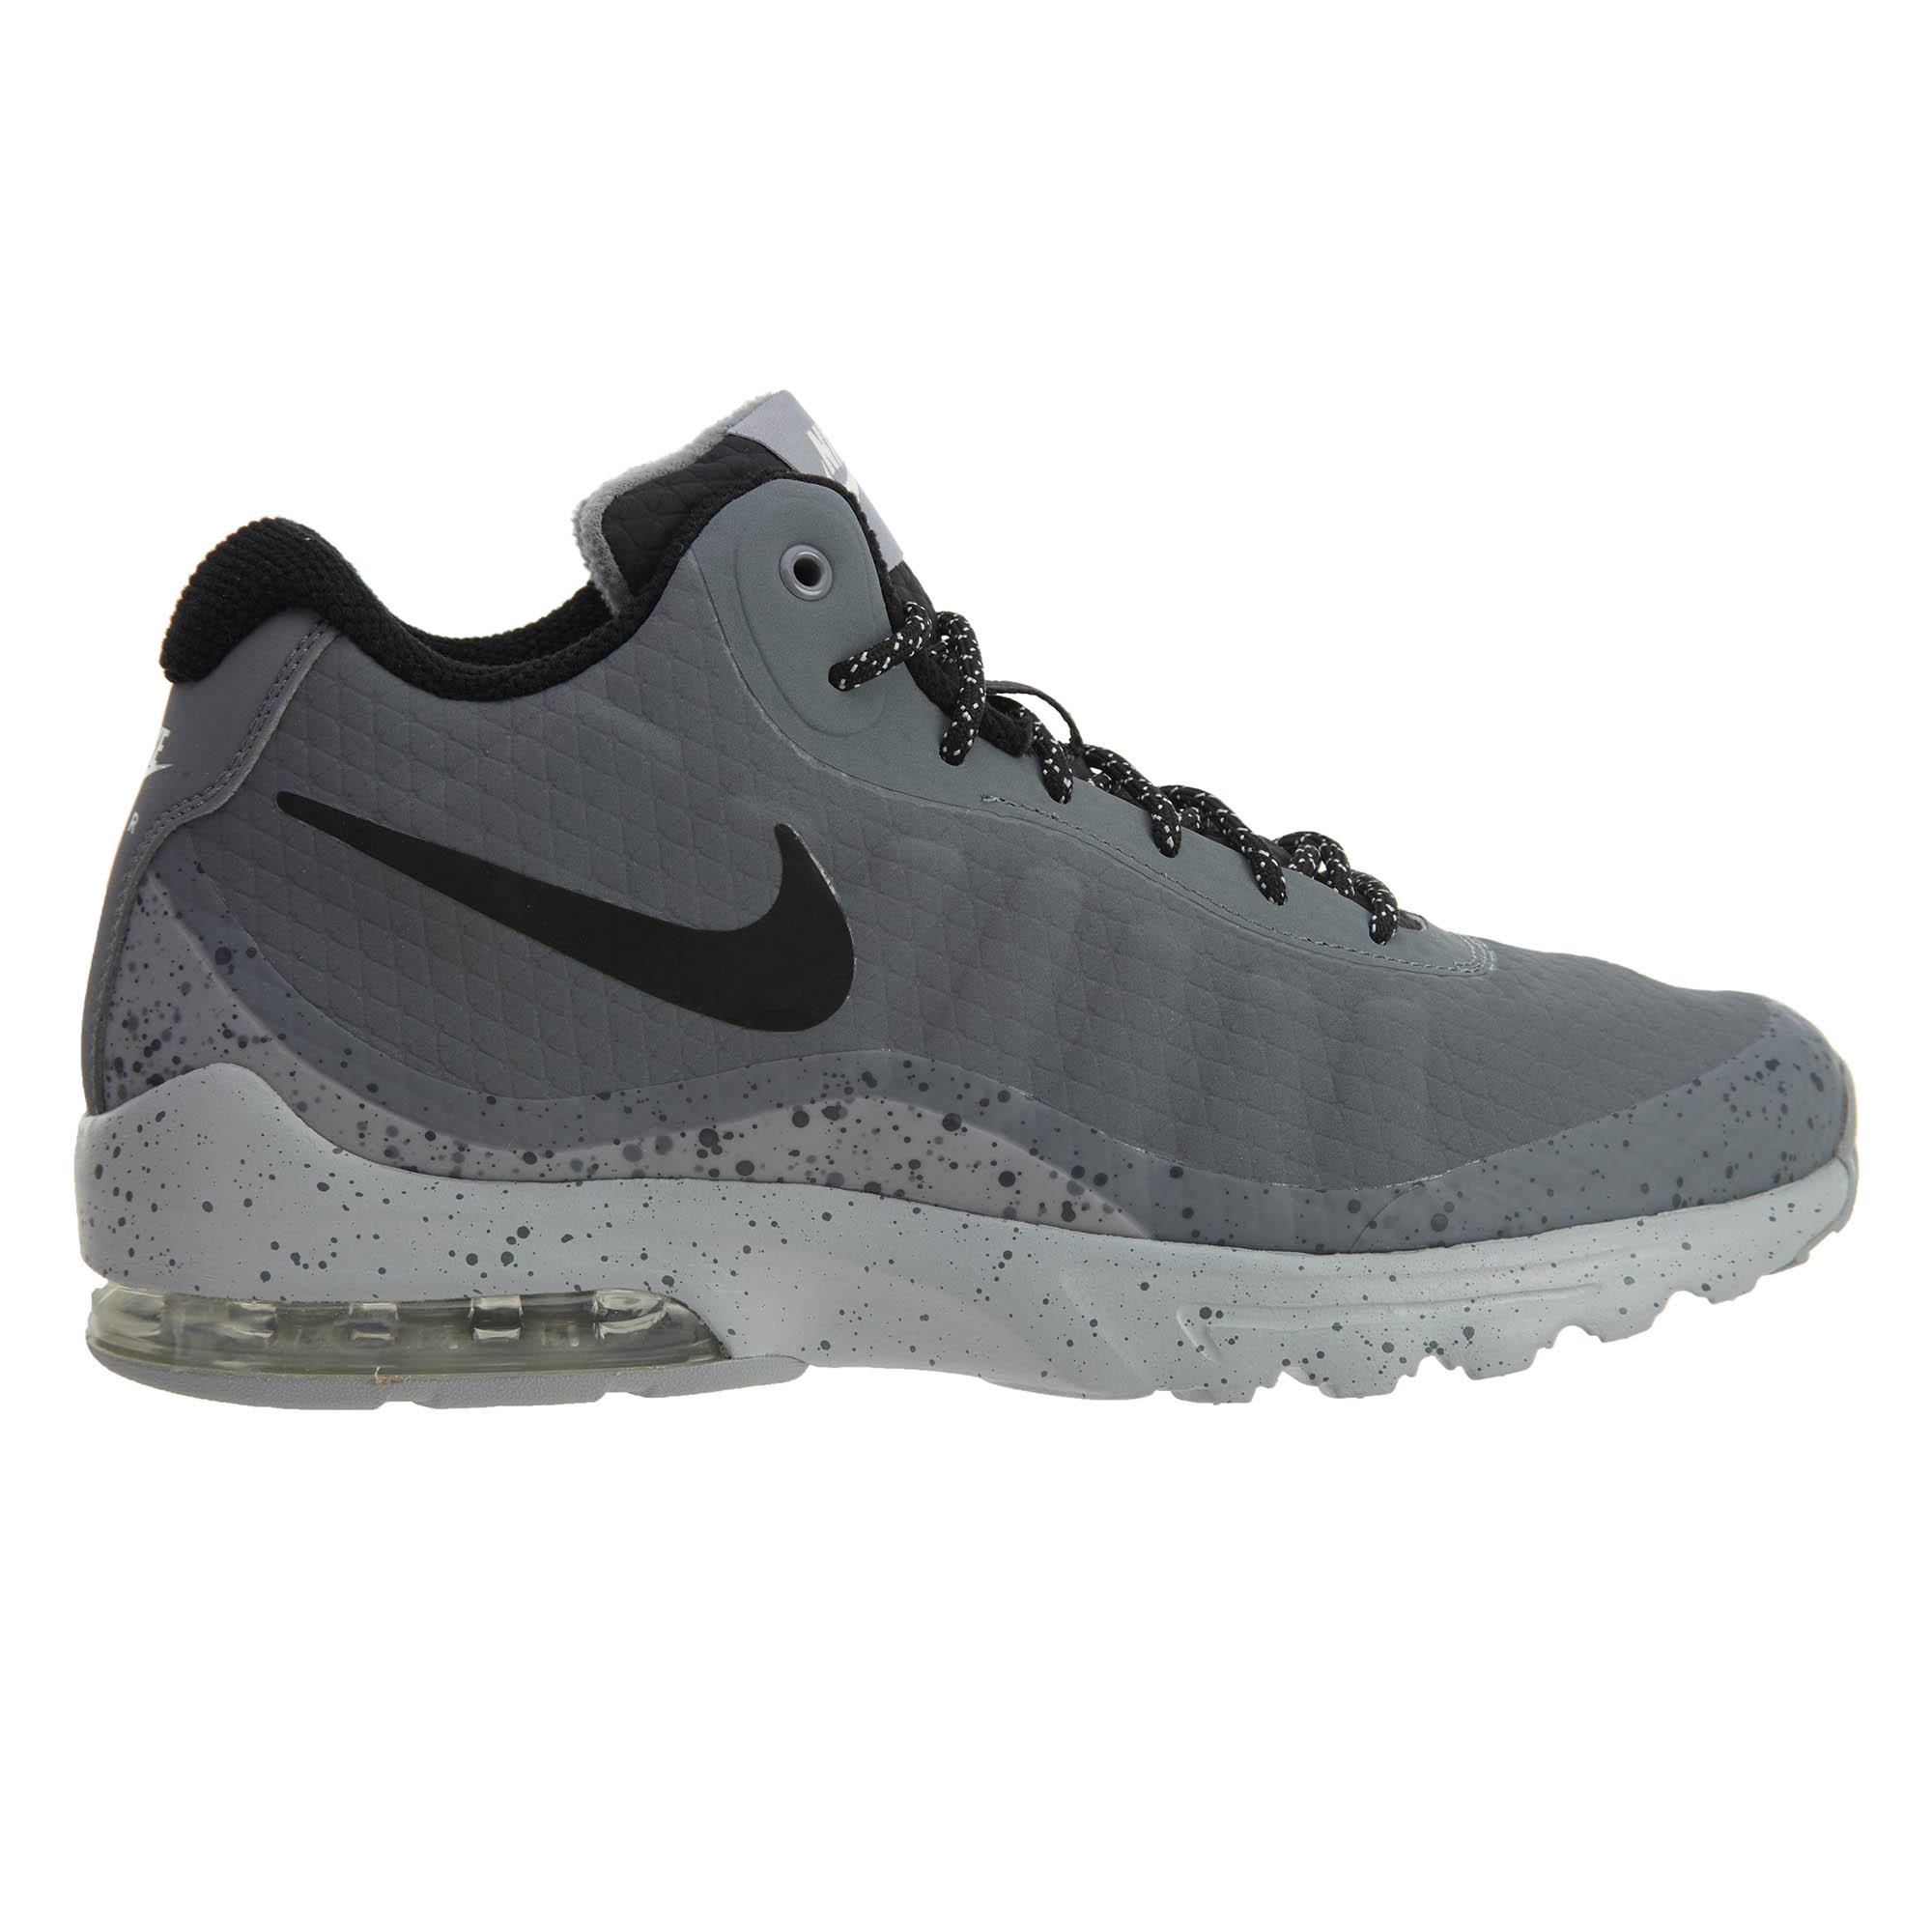 ea8e3b5048 ... real nike air max invigor mid cool grey black wolf grey c8598 1e89c